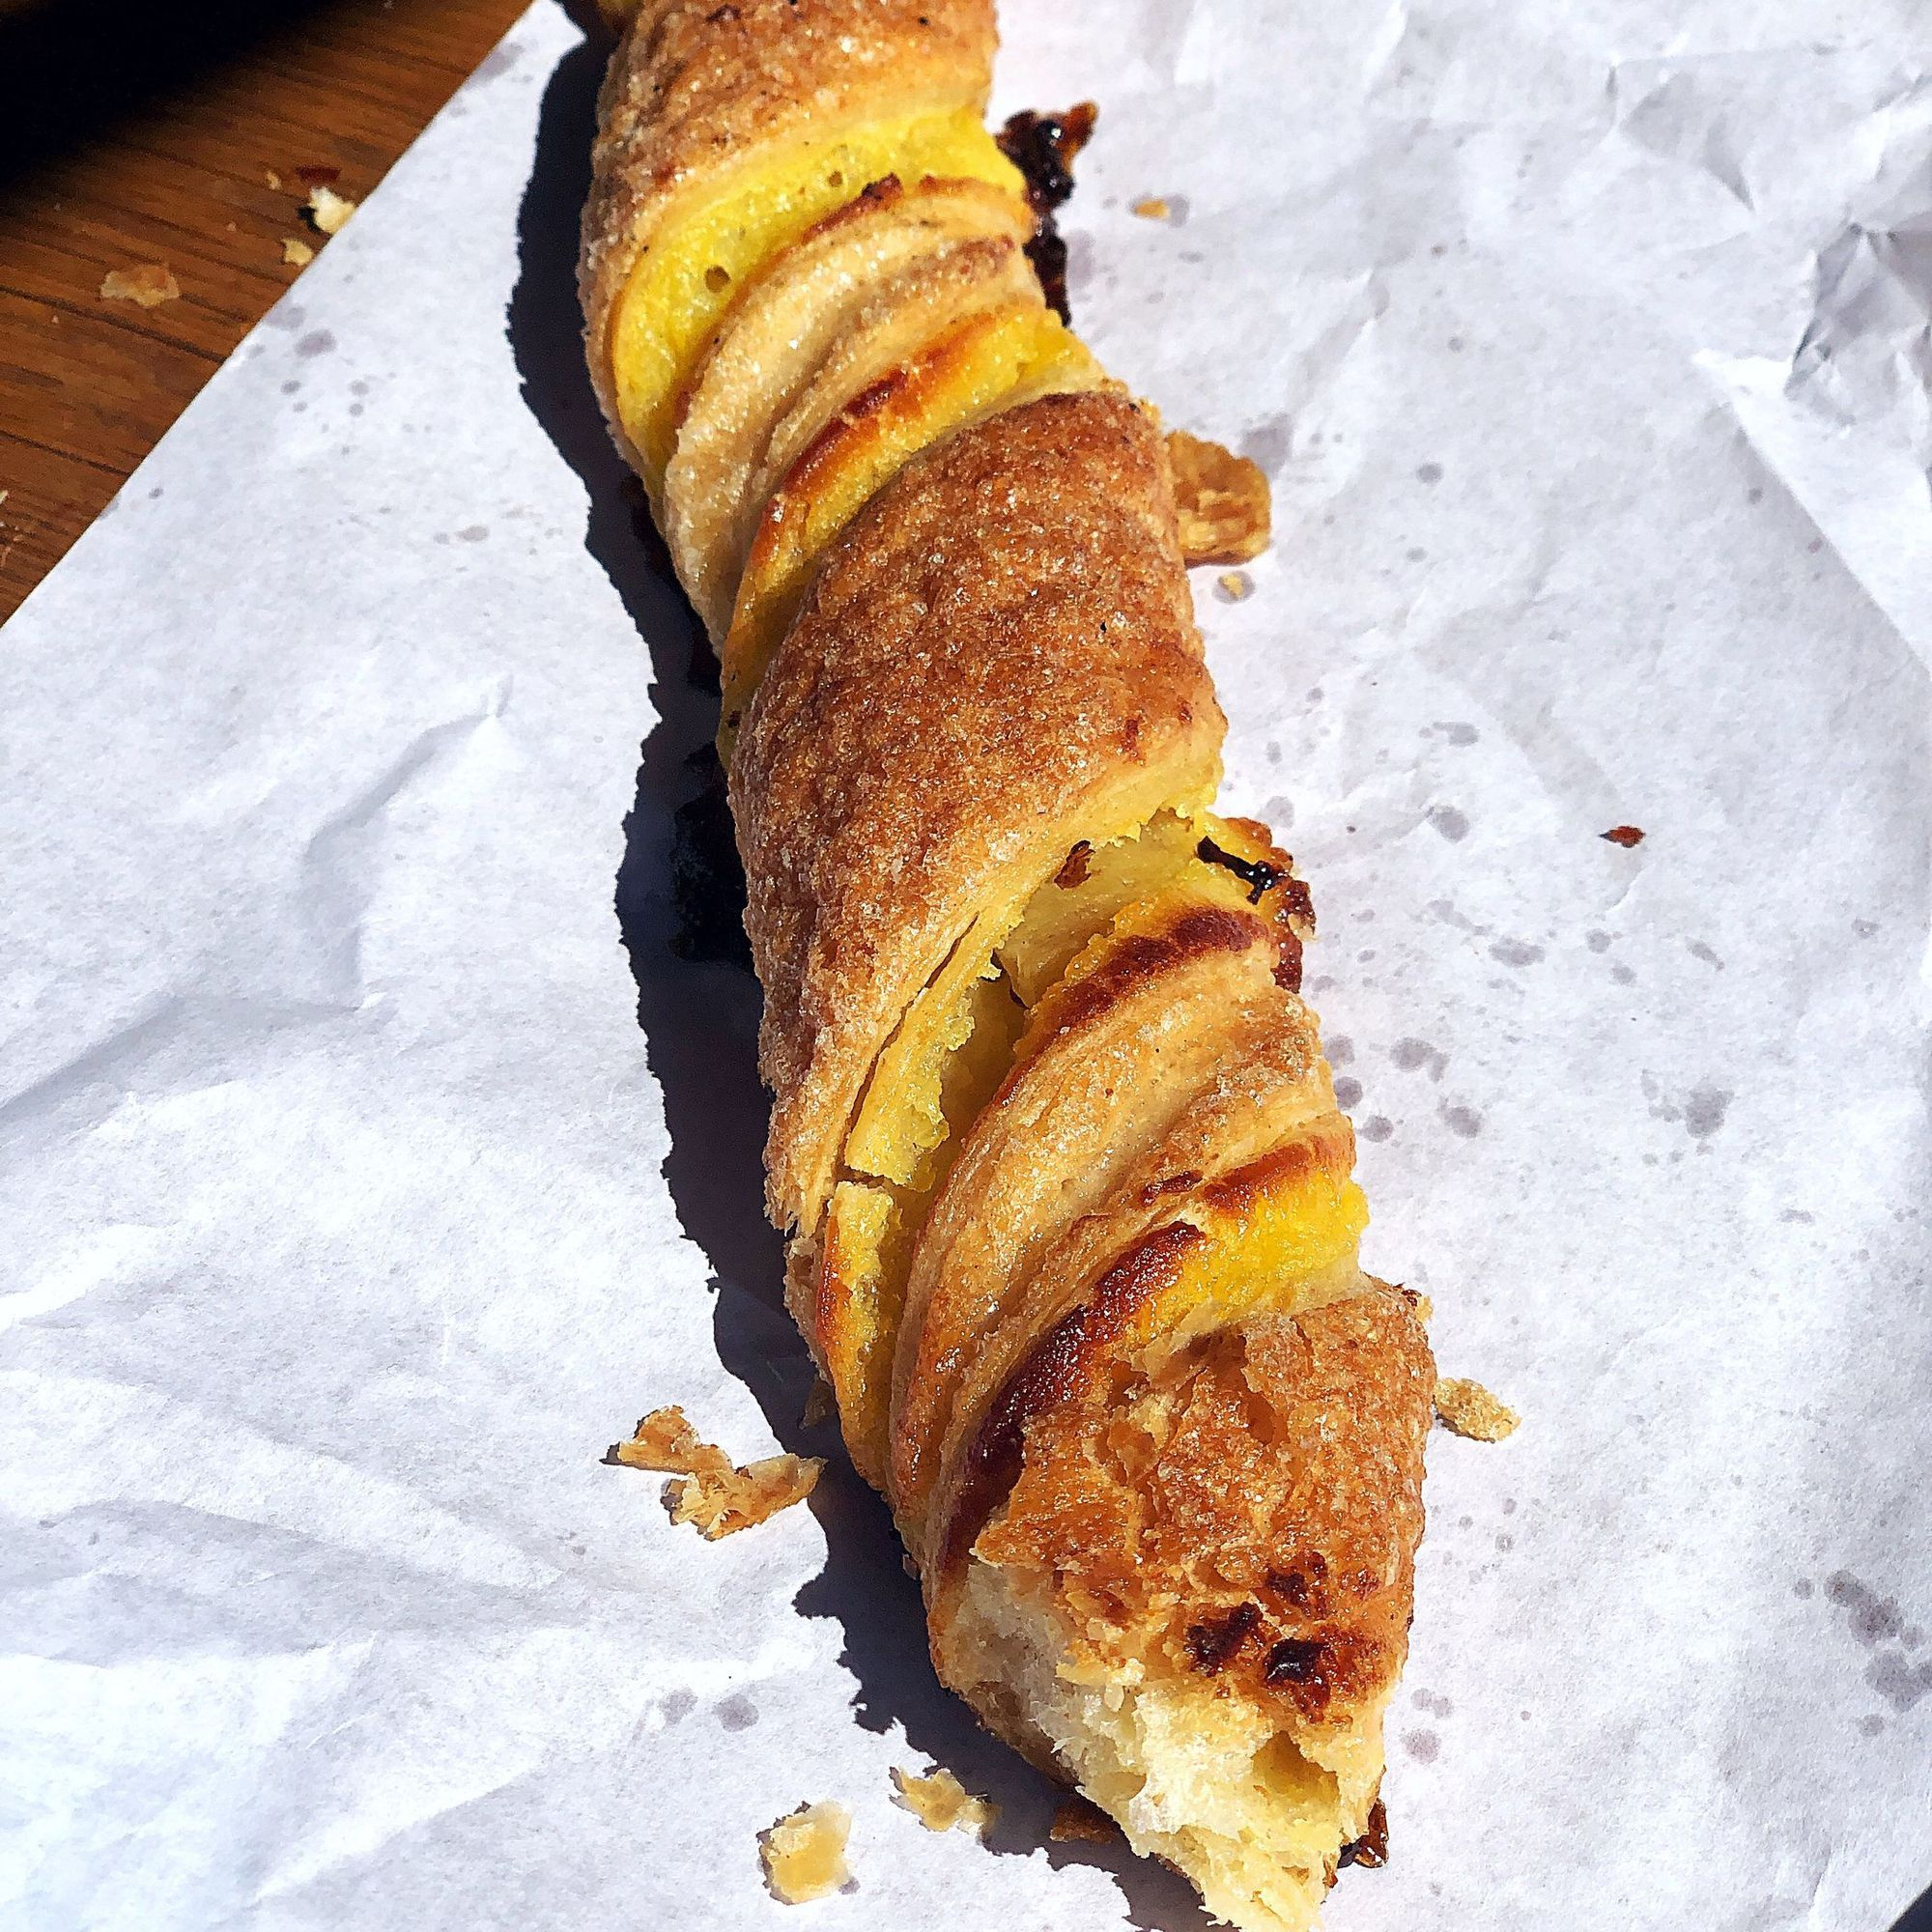 Photo of This Foot-Long French Pastry Is the Best Thing I Ate in Paris